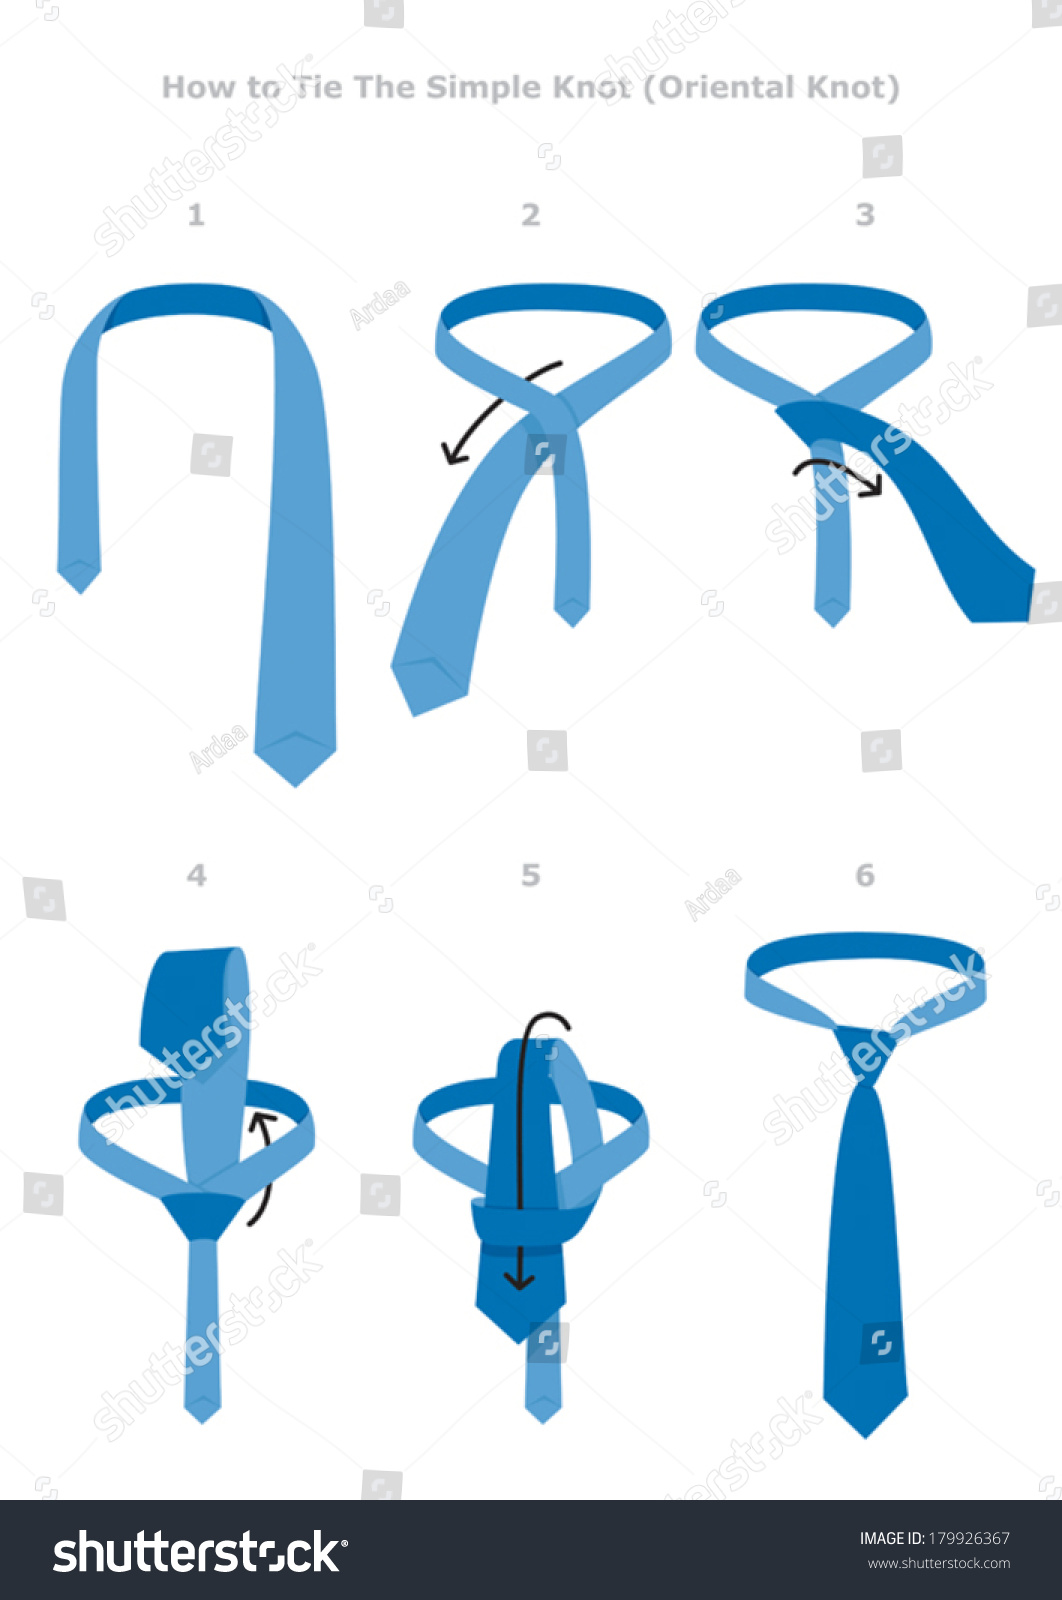 Simple Knot Tying Instructions Flat Vector Stock Vector 179926367